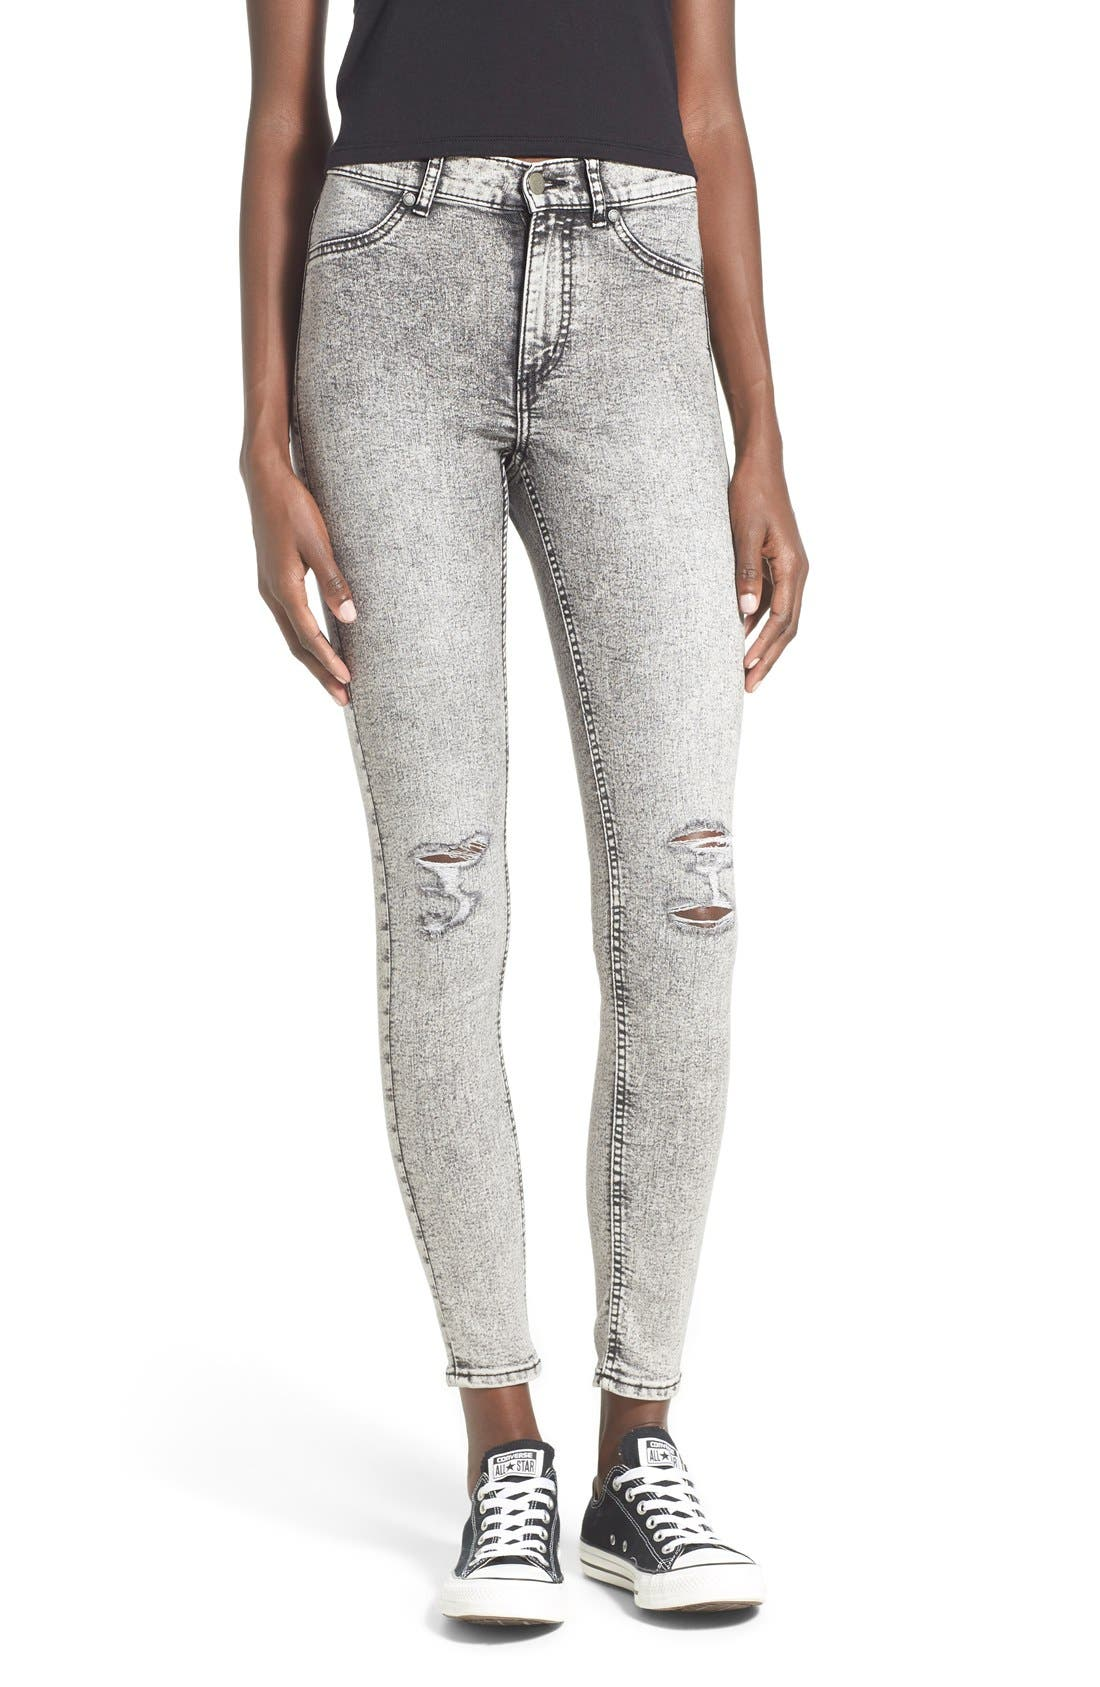 Alternate Image 1 Selected - Cheap Monday 'High Spray' Distressed High Rise Skinny Jeans (Master Grey)